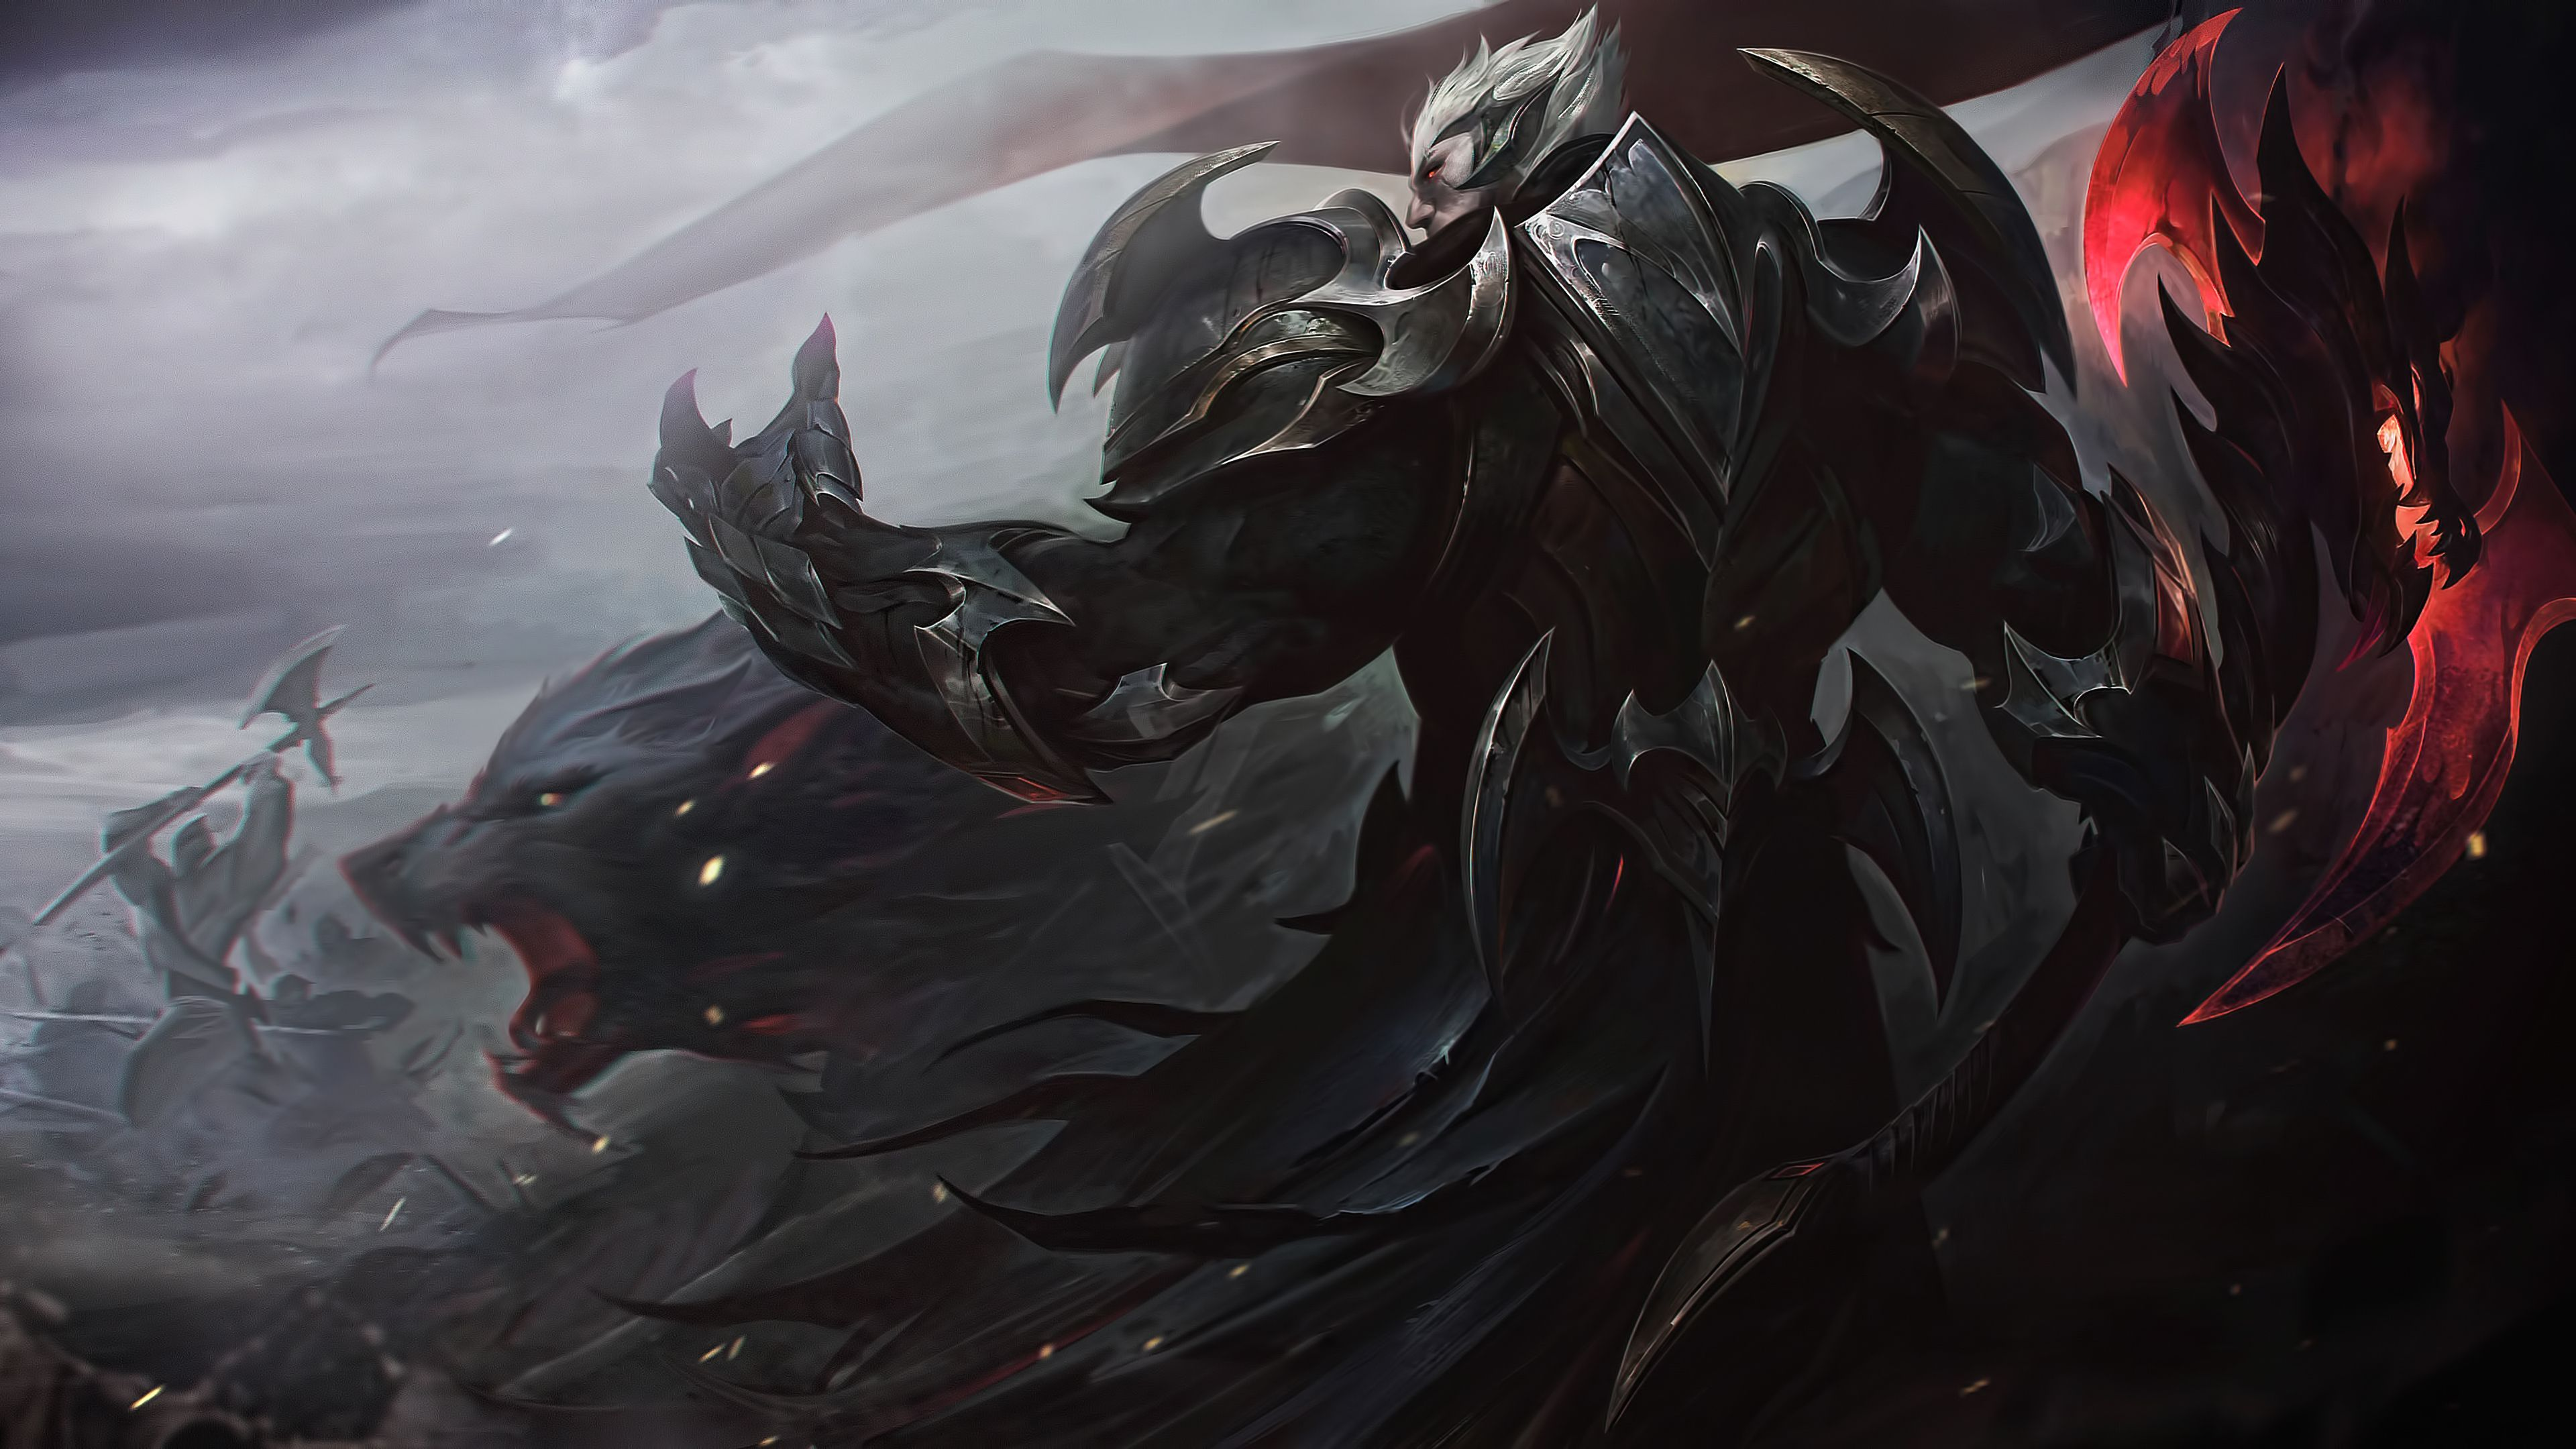 Wallpaper 4k Darius League Of Legends 4k 4k Wallpapers Deviantart